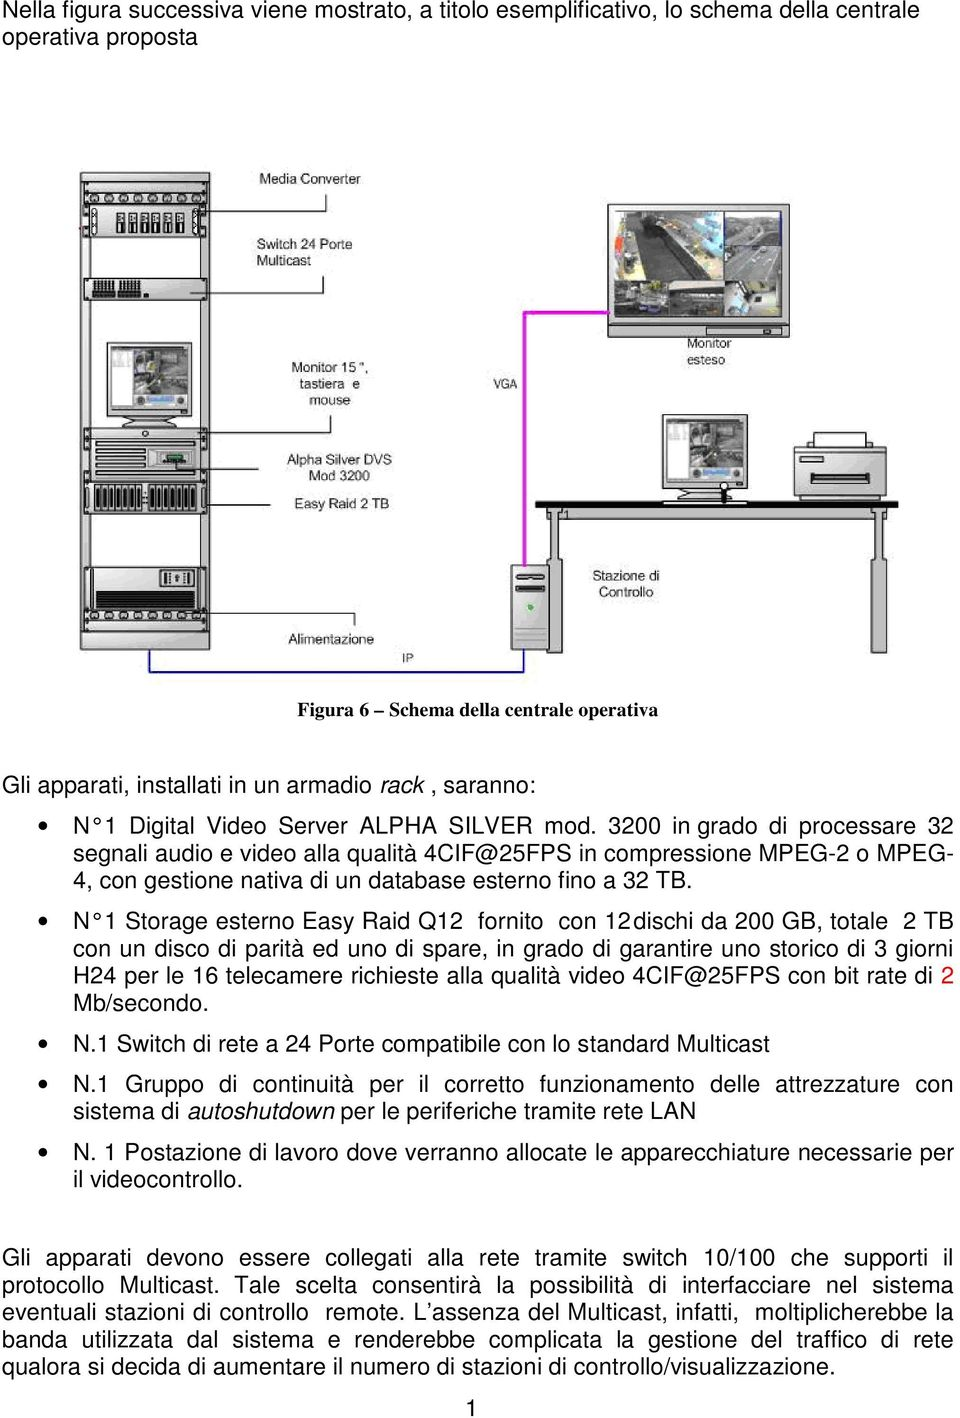 3200 in grado di processare 32 segnali audio e video alla qualità 4CIF@25FPS in compressione MPEG-2 o MPEG- 4, con gestione nativa di un database esterno fino a 32 TB.